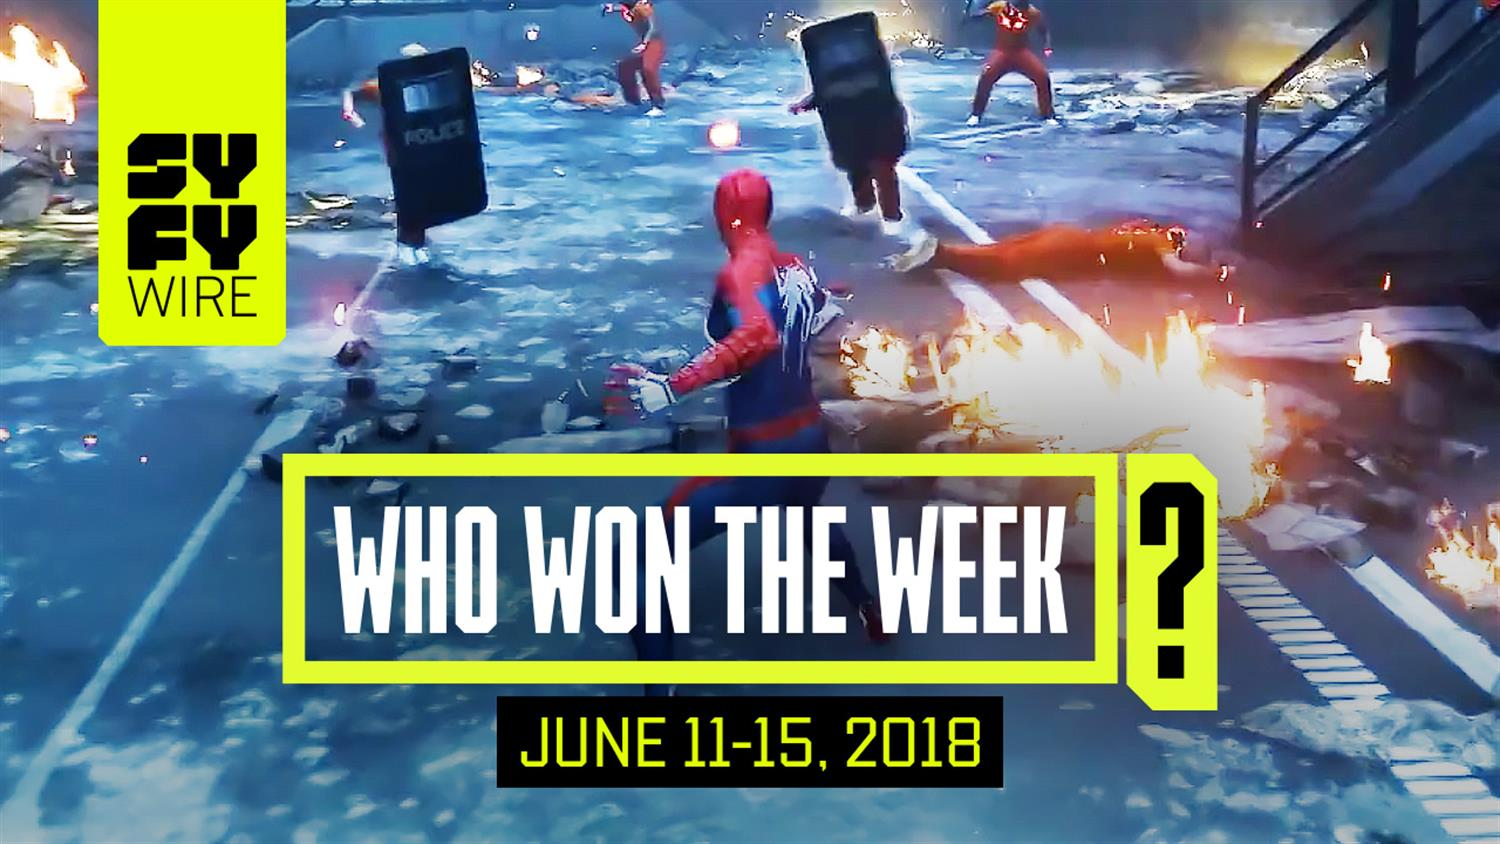 E3 Video Games and Incredibles 2: Who Won The Week For June 11-15